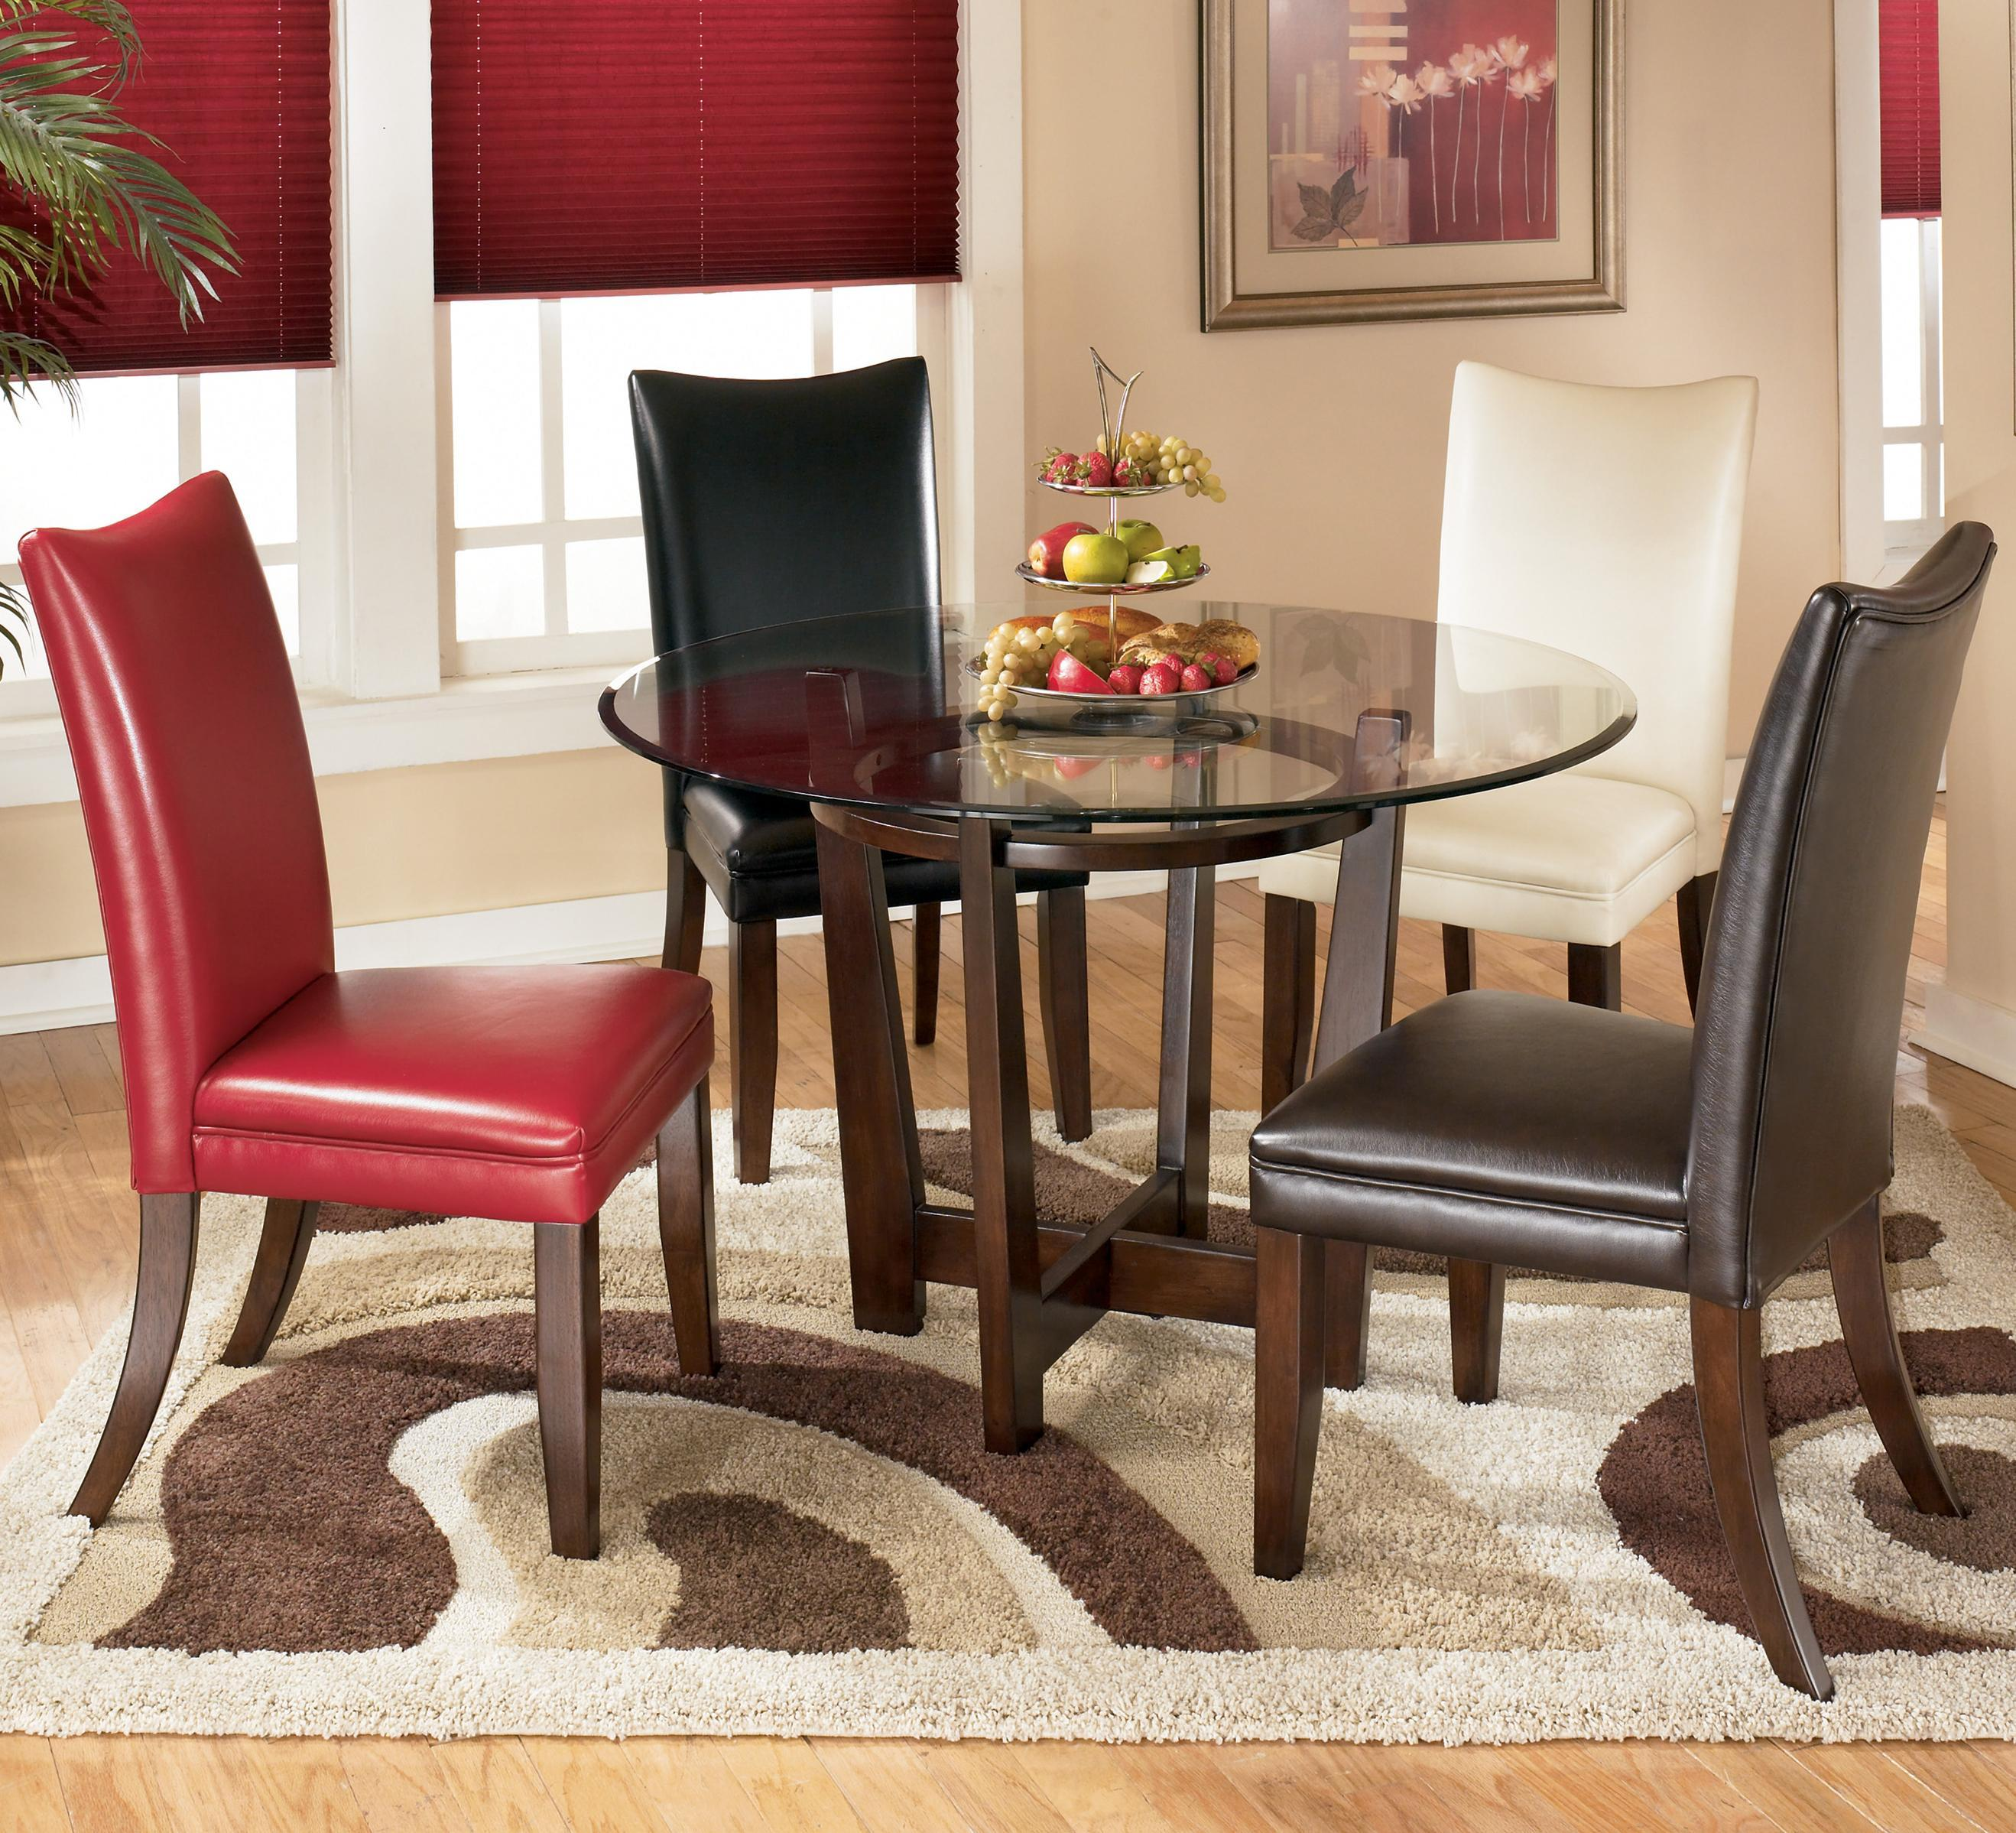 circle table and chair set dining room covers bed bath beyond 5 piece round with 4 different color